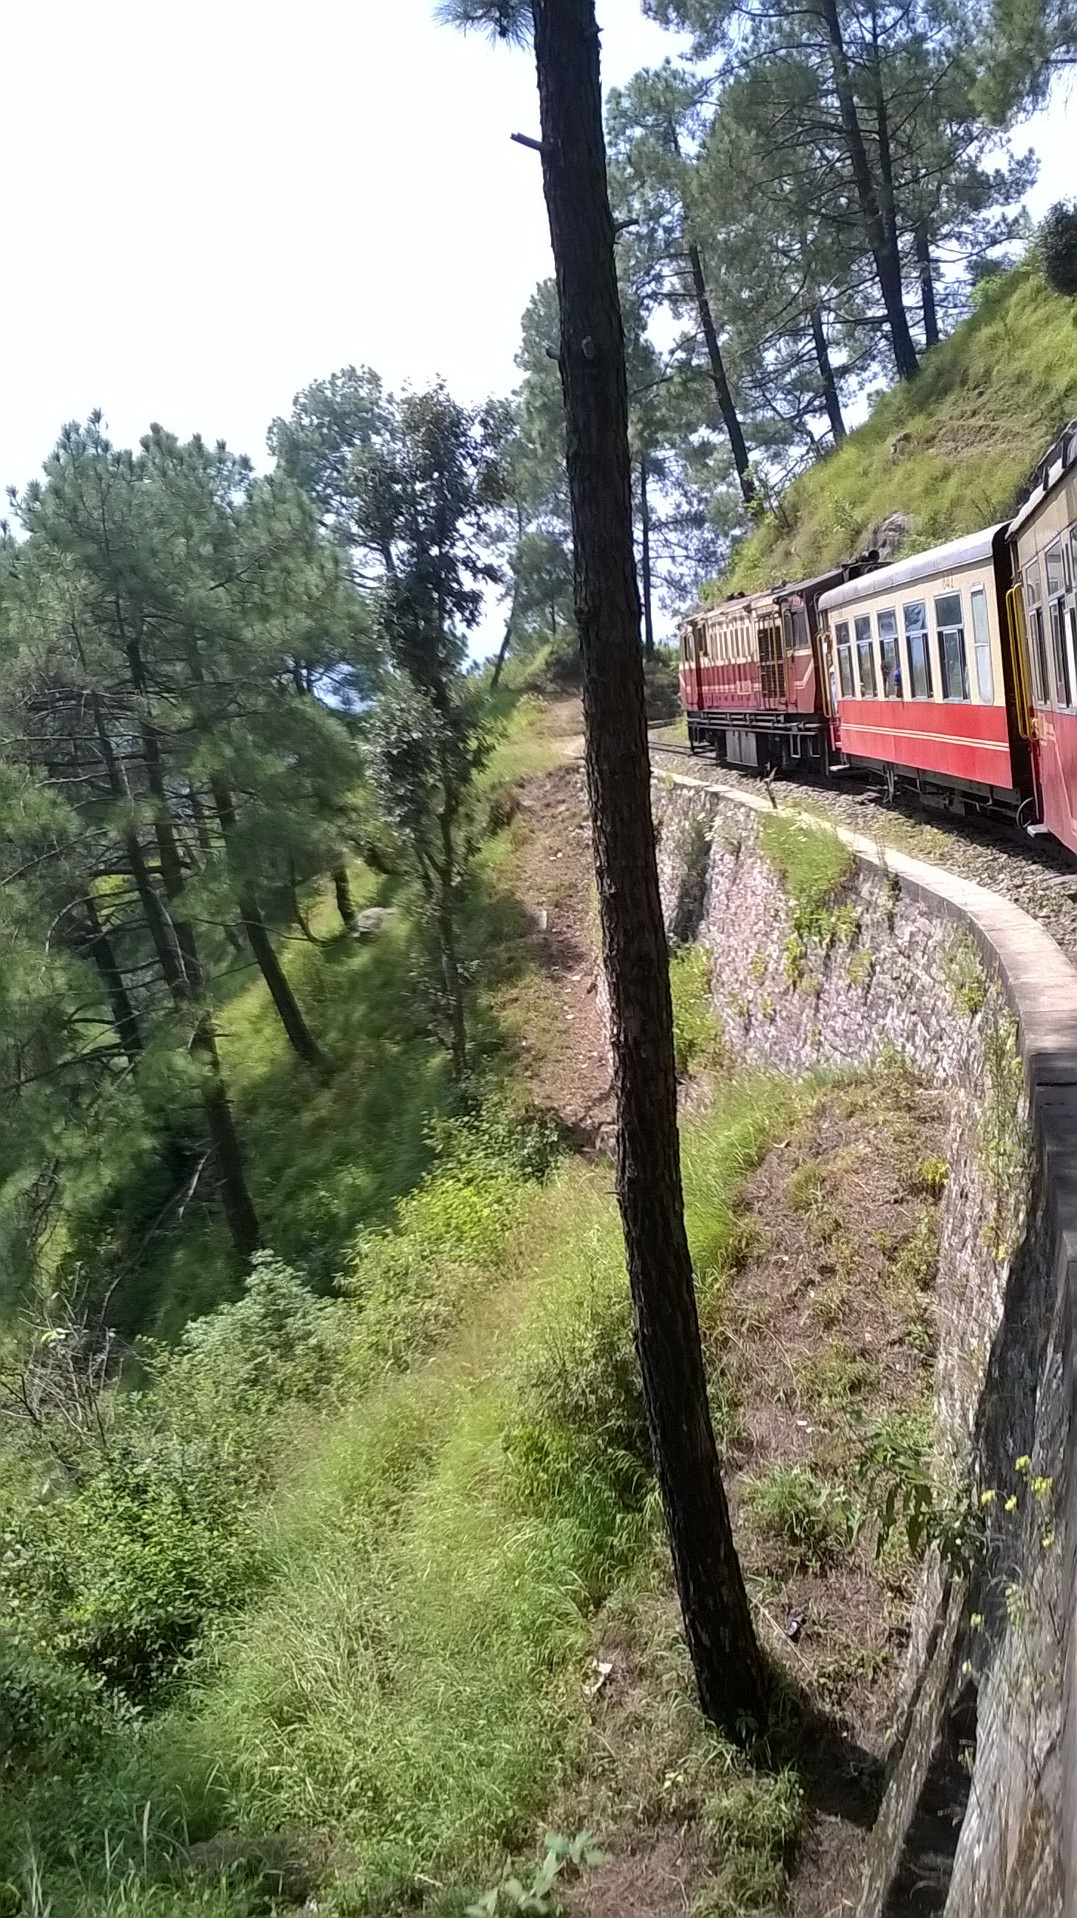 The Shimla Railway